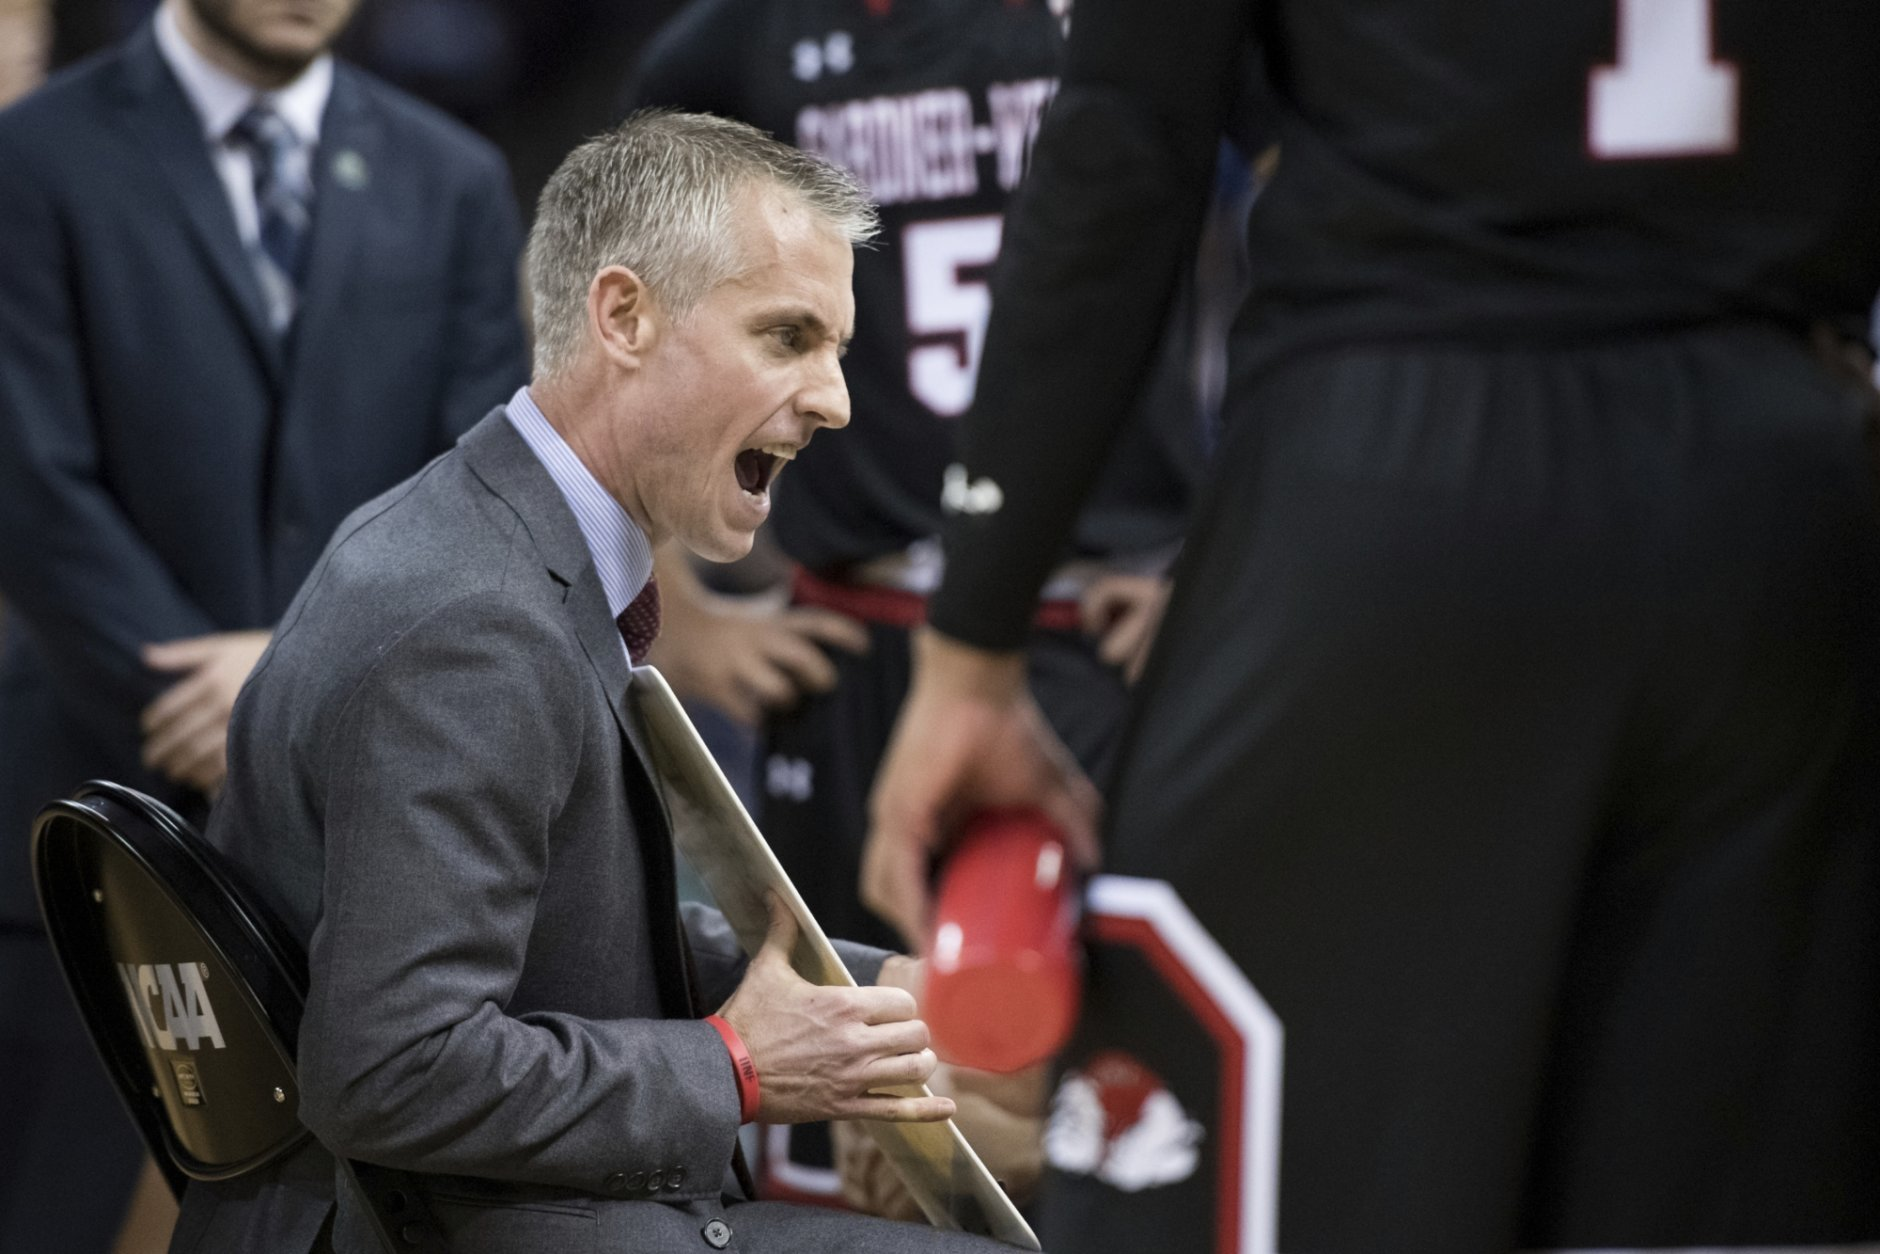 Gardner-Webb head coach Tim Craft talks with his team during a timeout against Virginia in a first-round game in the NCAA men's college basketball tournament Friday, March 22, 2019, in Columbia, S.C. (AP Photo/Sean Rayford)